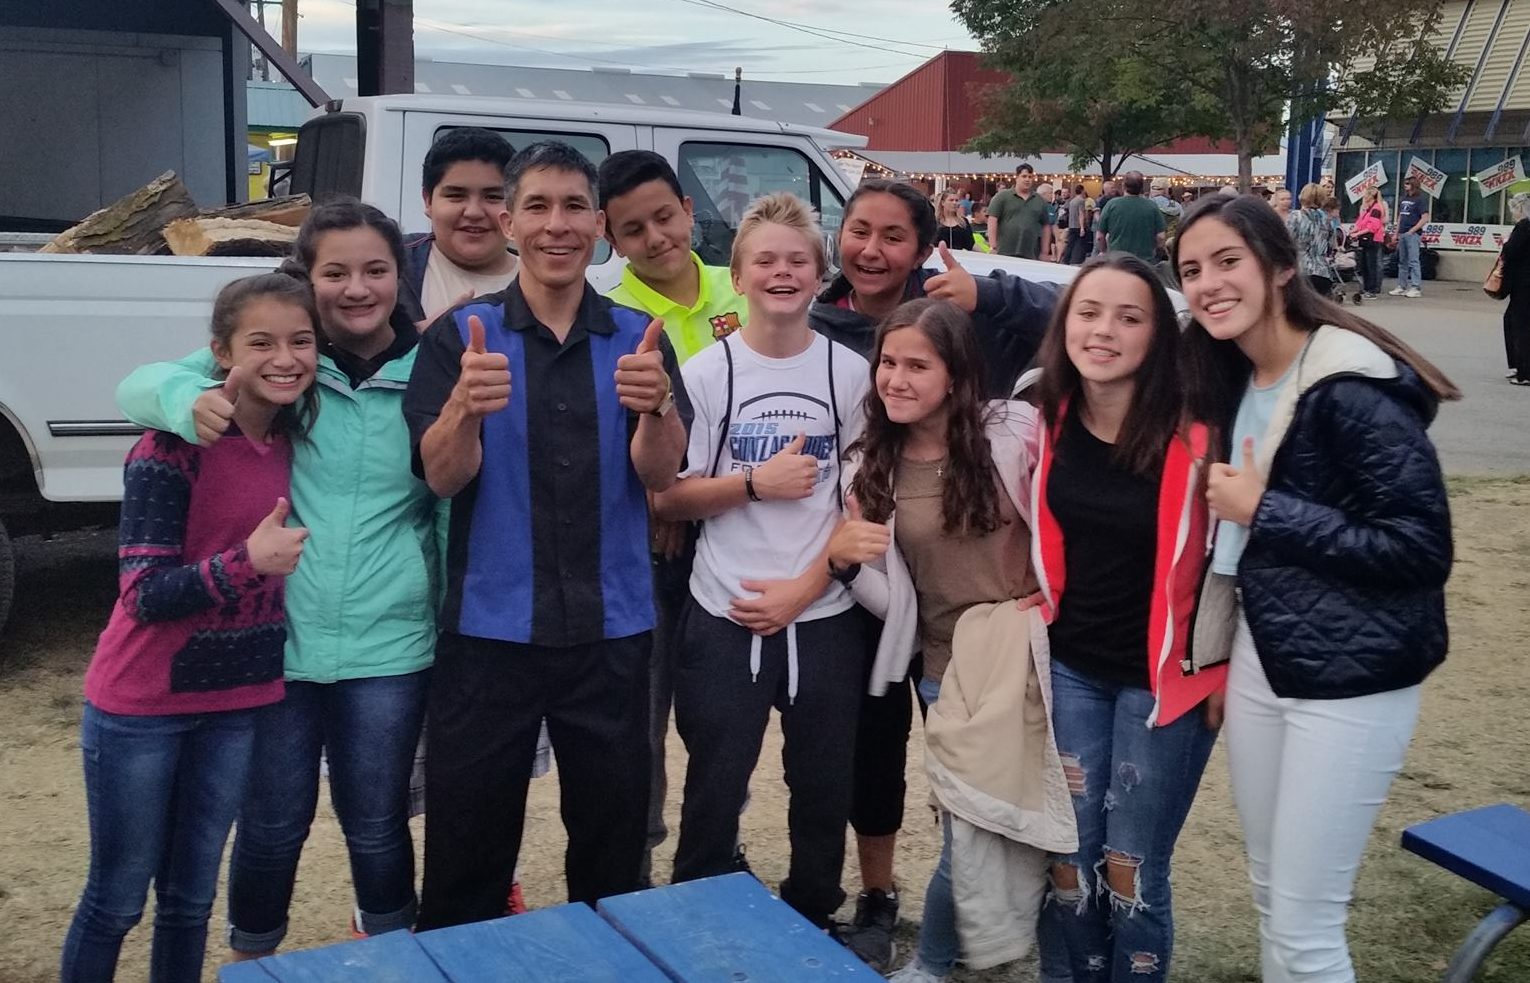 """It was great to see you again at the Spokane County Fair last night! Our grand kids and their friends (some who are exchange students from Mexico) thoroughly enjoyed the amazing magic you performed before their eyes! You helped make their Fair experience memorable! Thank you for the pleasure of your company!"" AnneMarie DeCaro?"